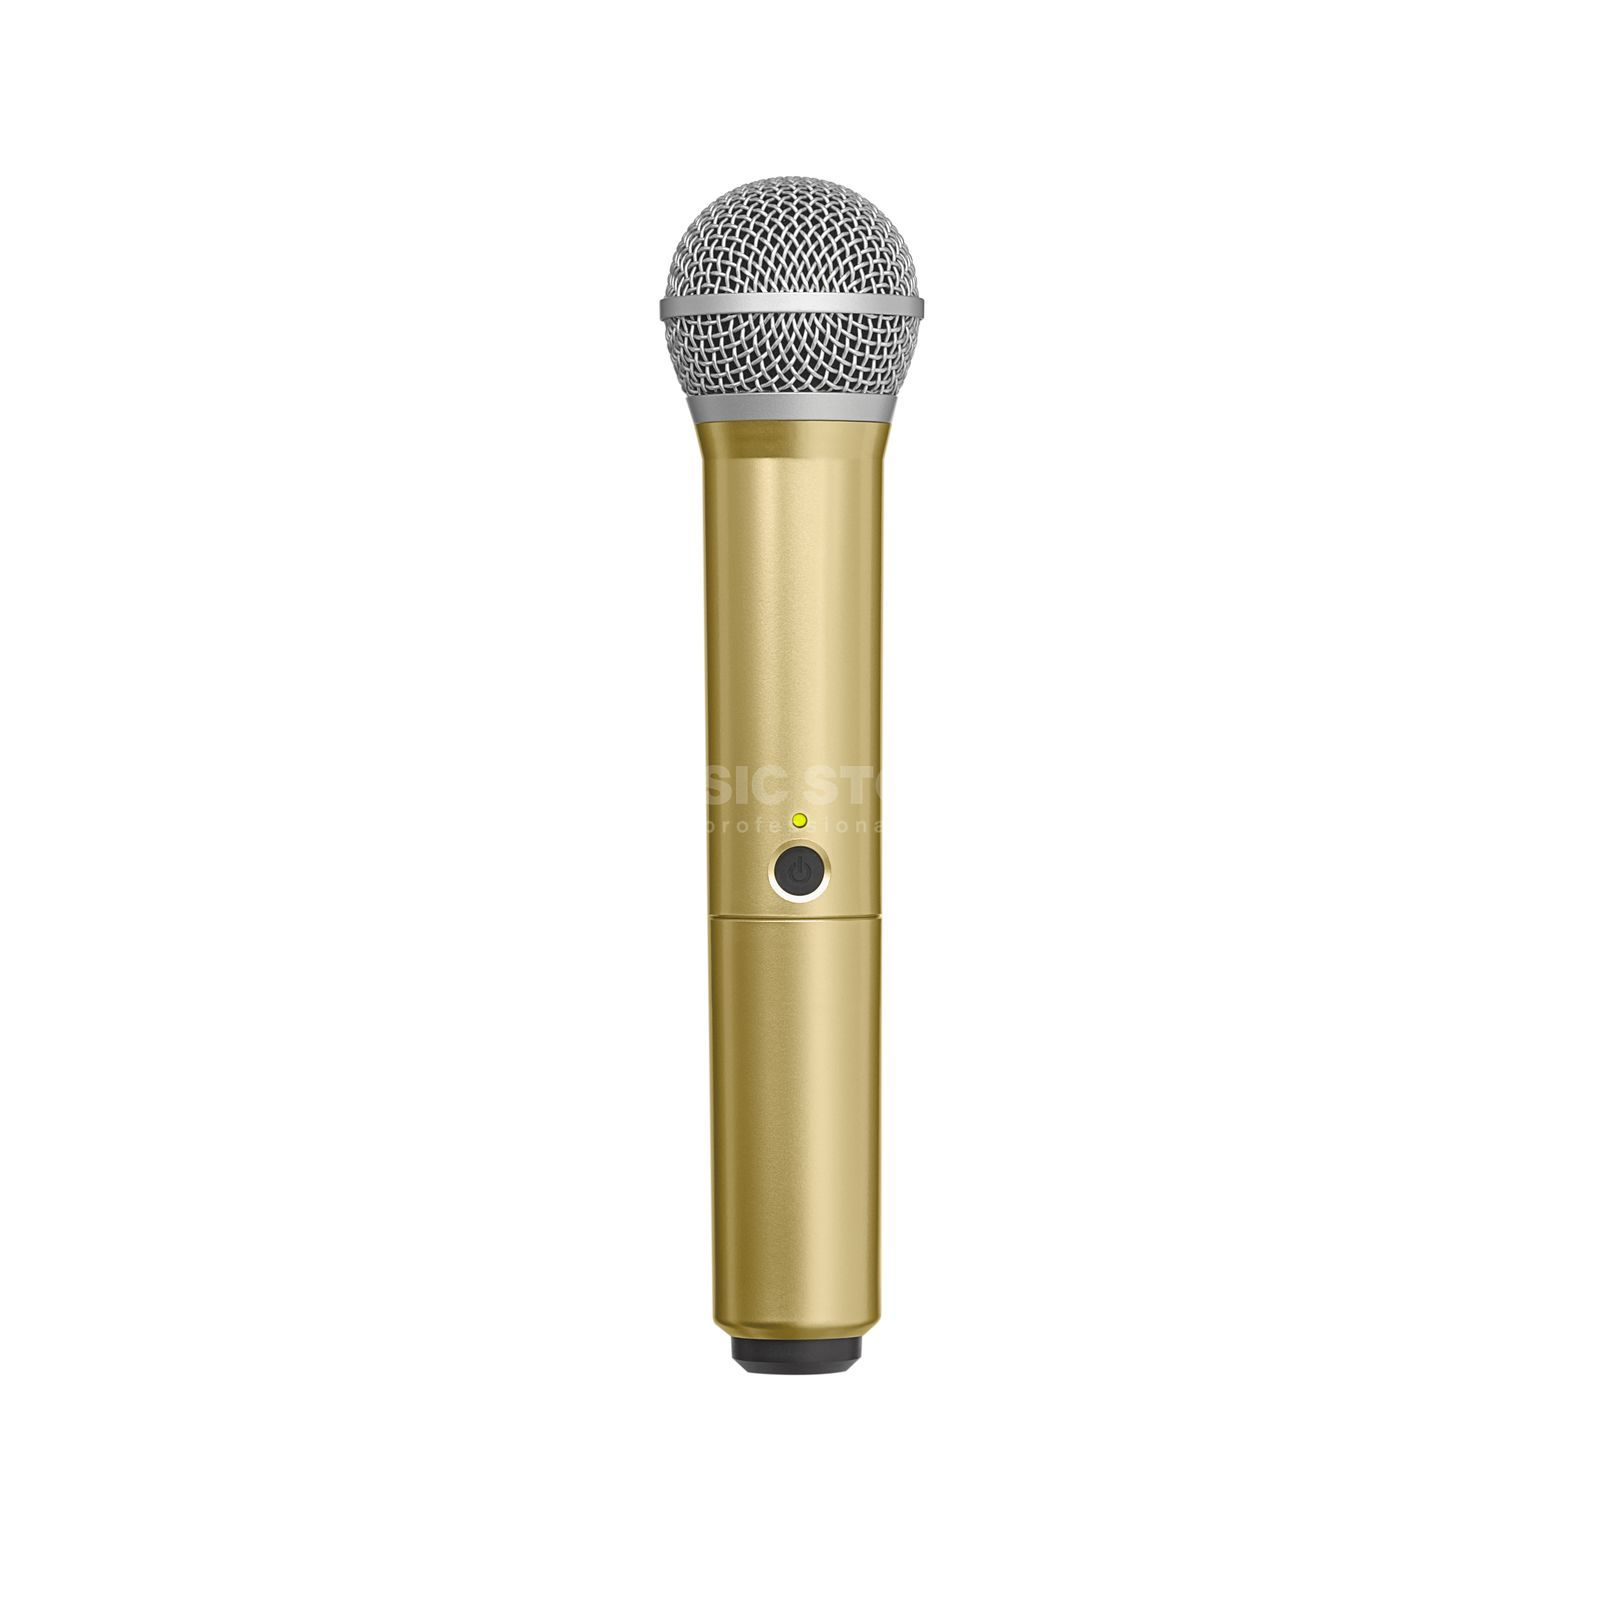 Shure WA712 Colour Housing Gold for BLX2/PG58 Handheld Transmitter Produktbillede